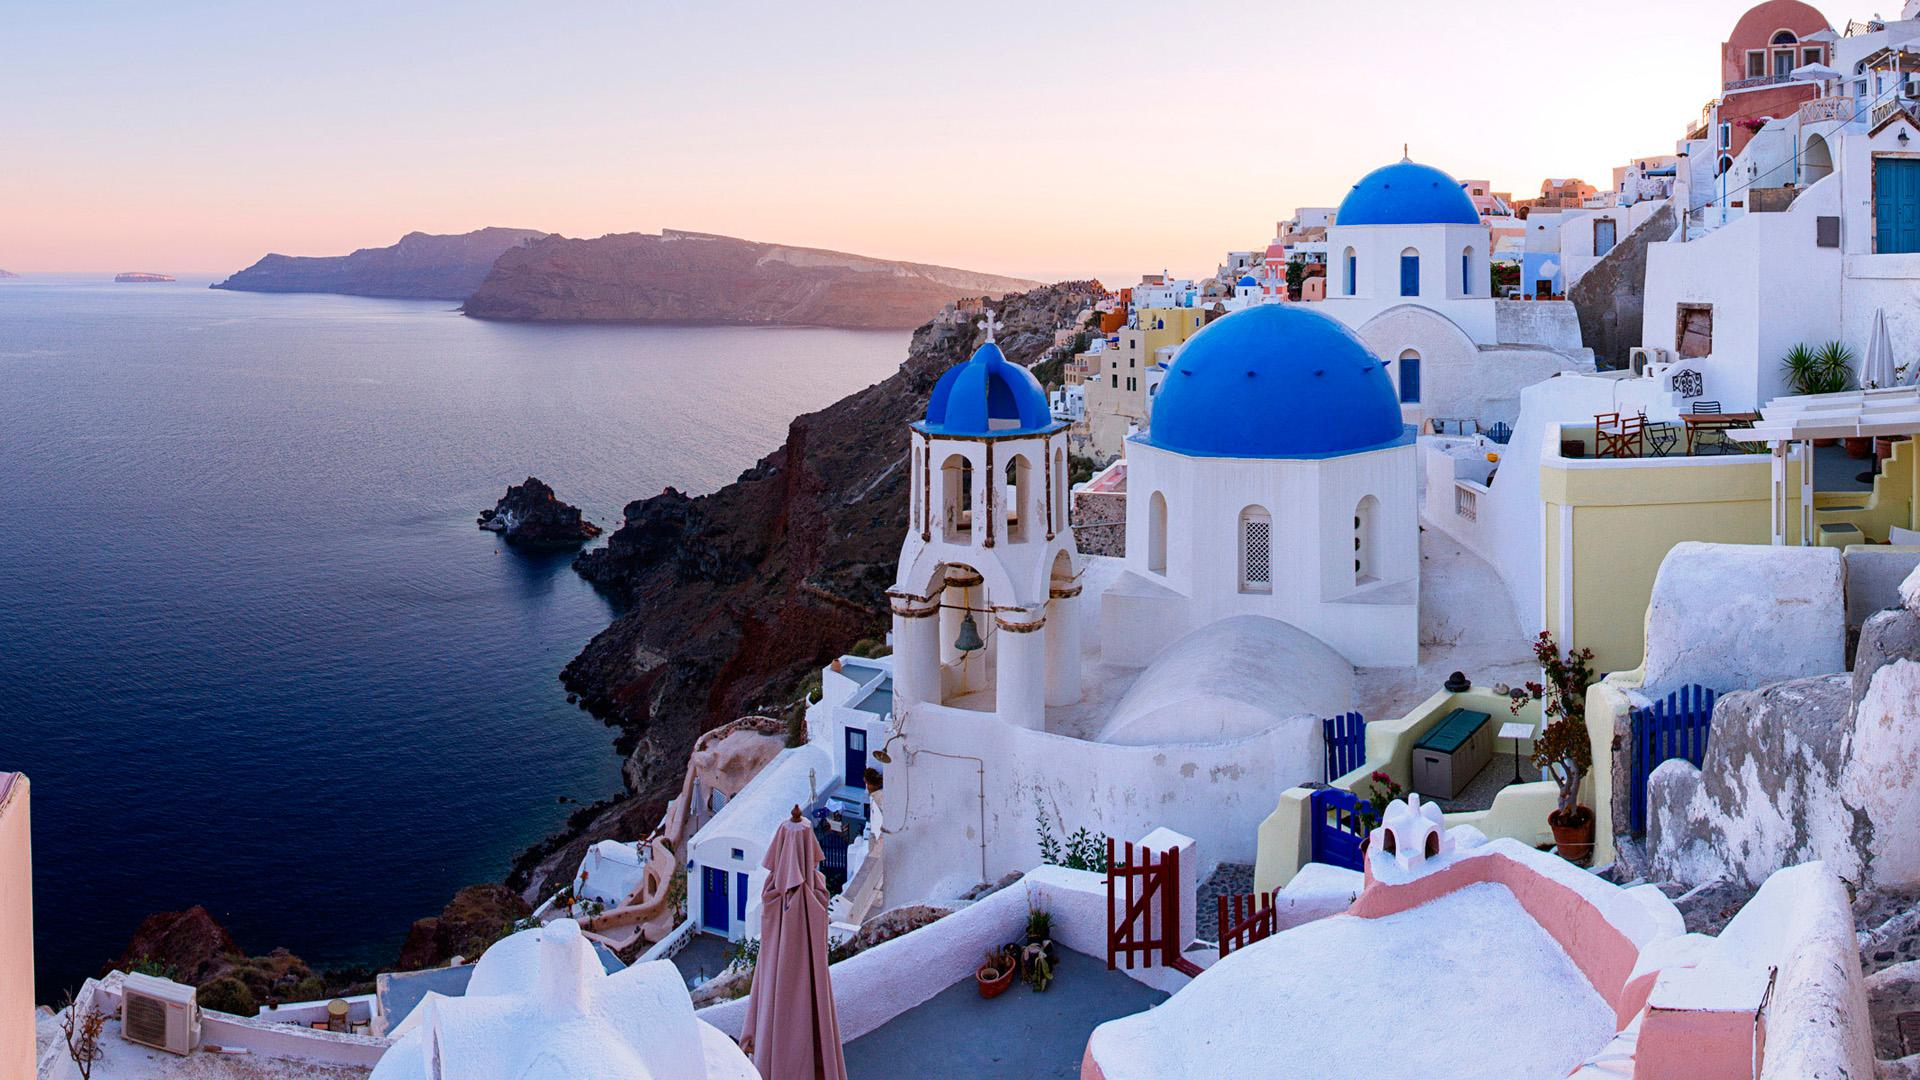 Santorini HD Wallpaper Background Images 1920x1080